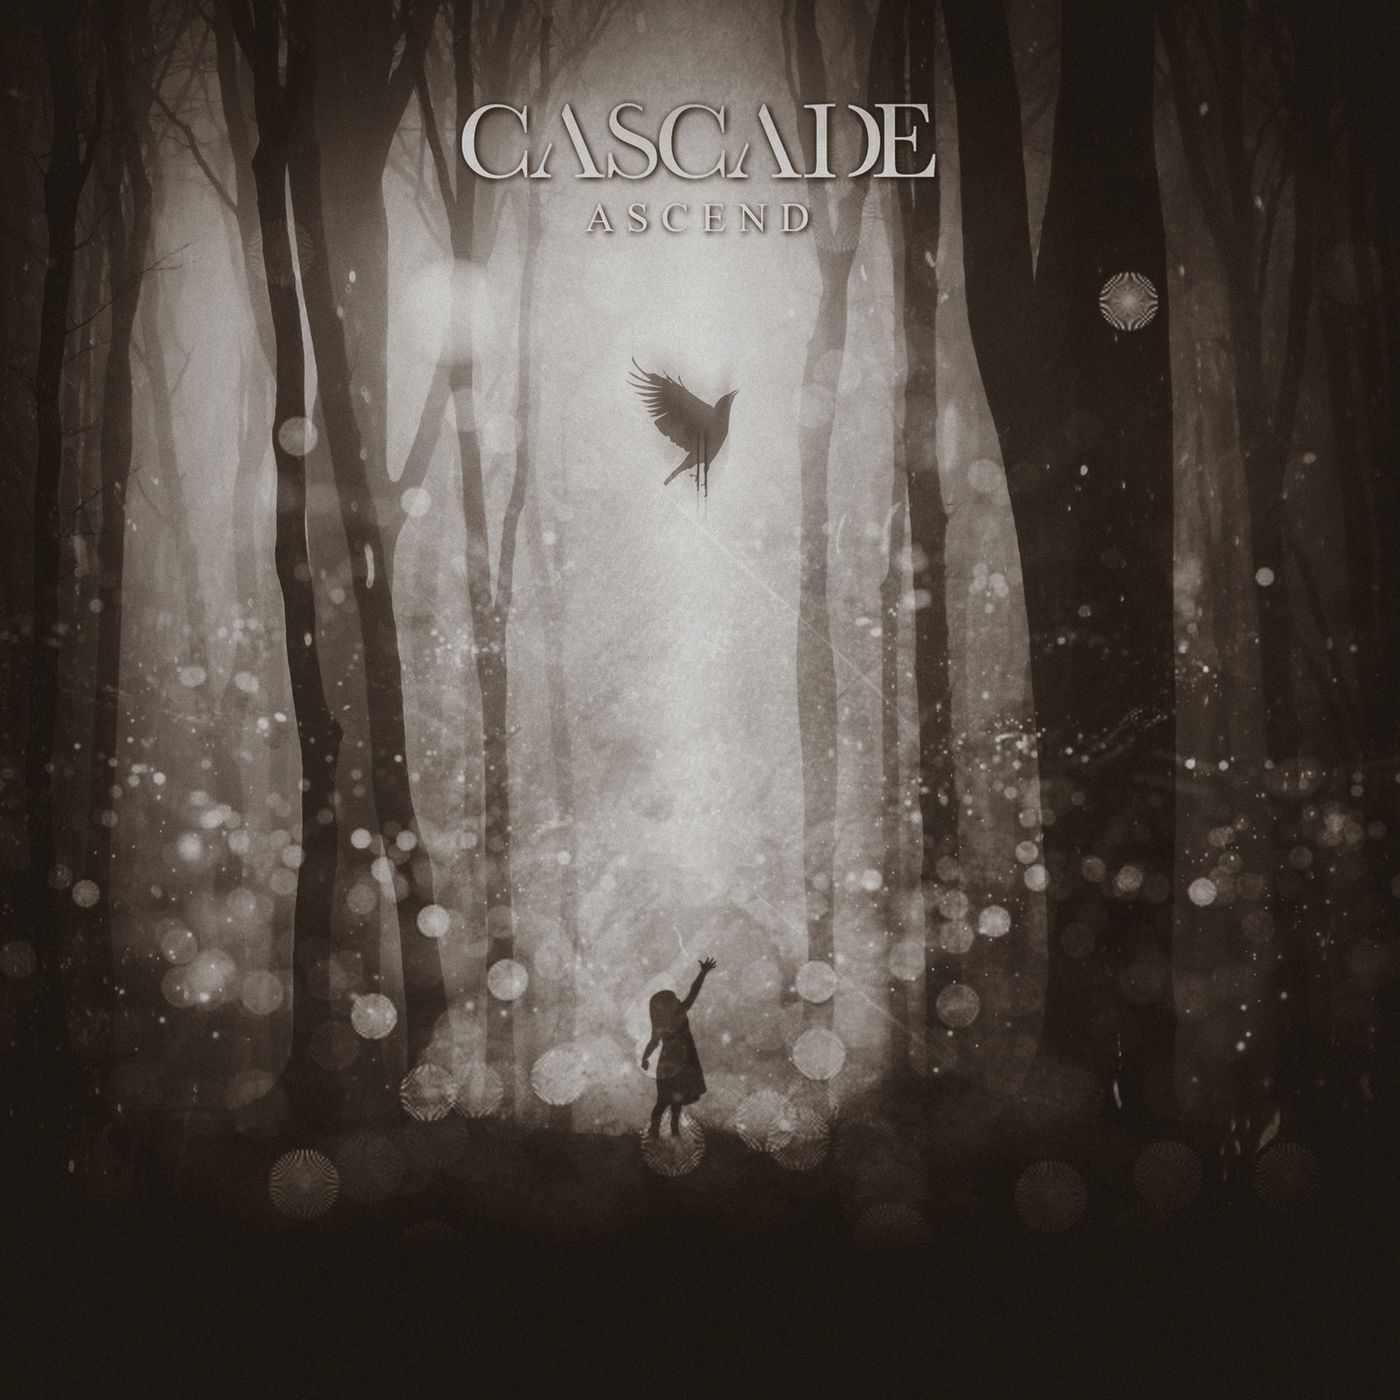 Cascade - Ascend [single] (2017)